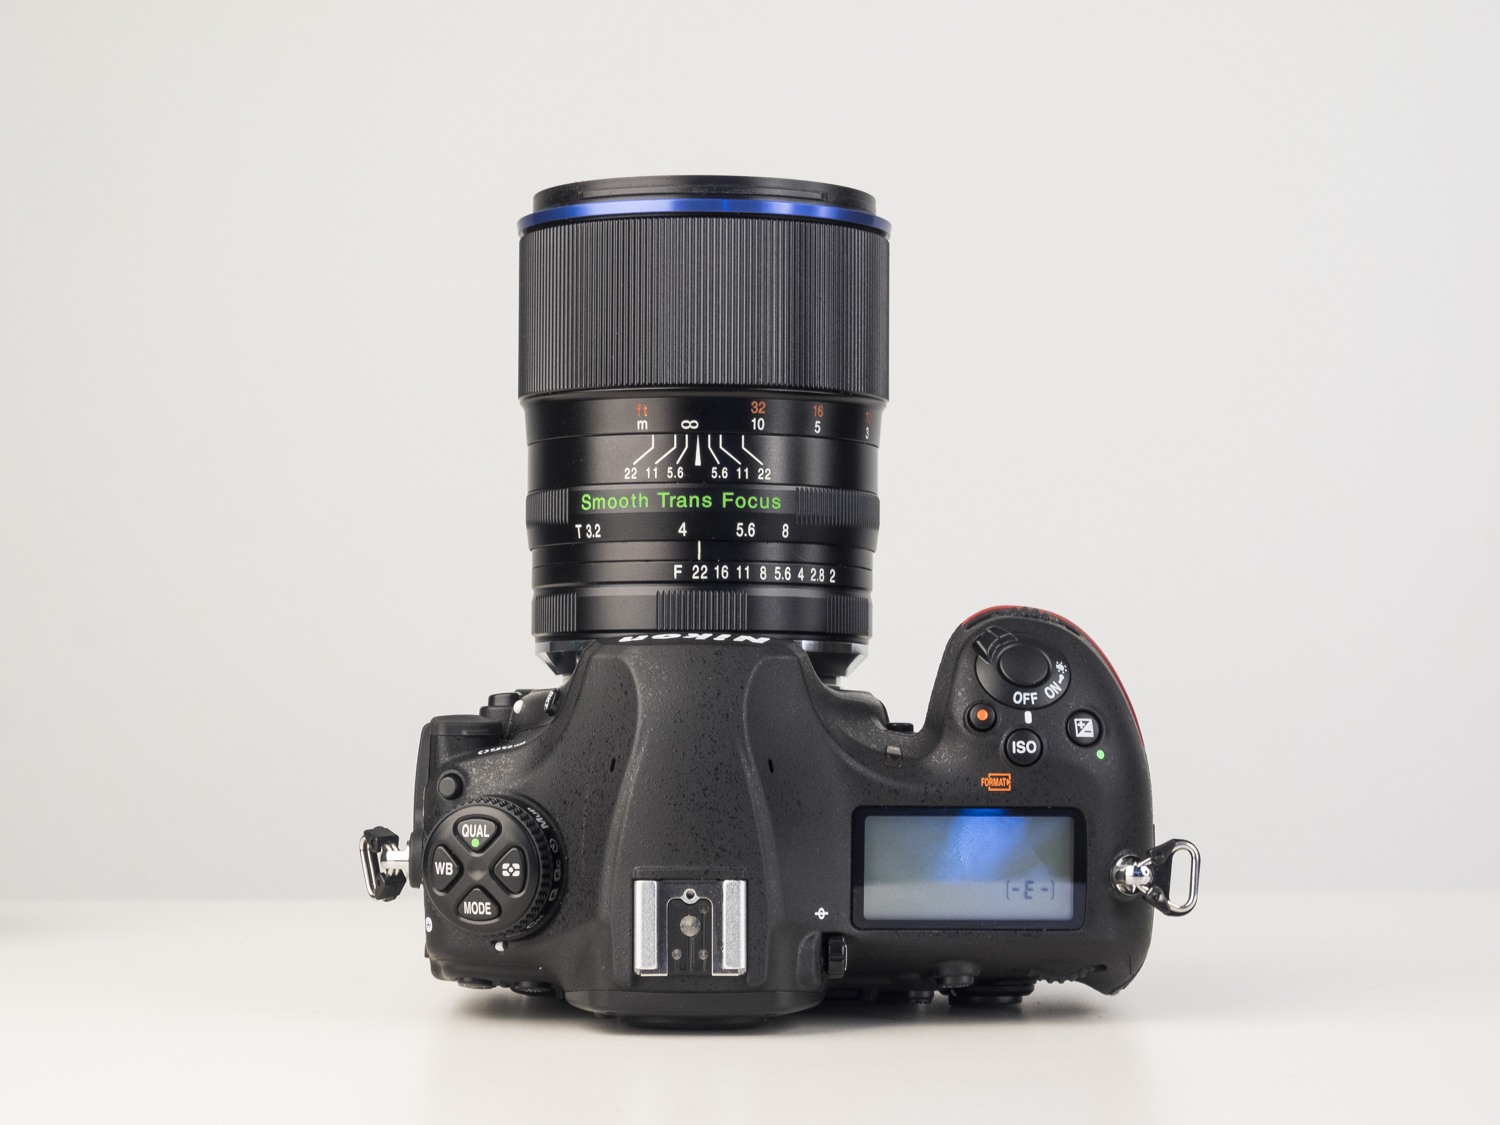 laowa 105mm f2 STF lens product images 01.jpg